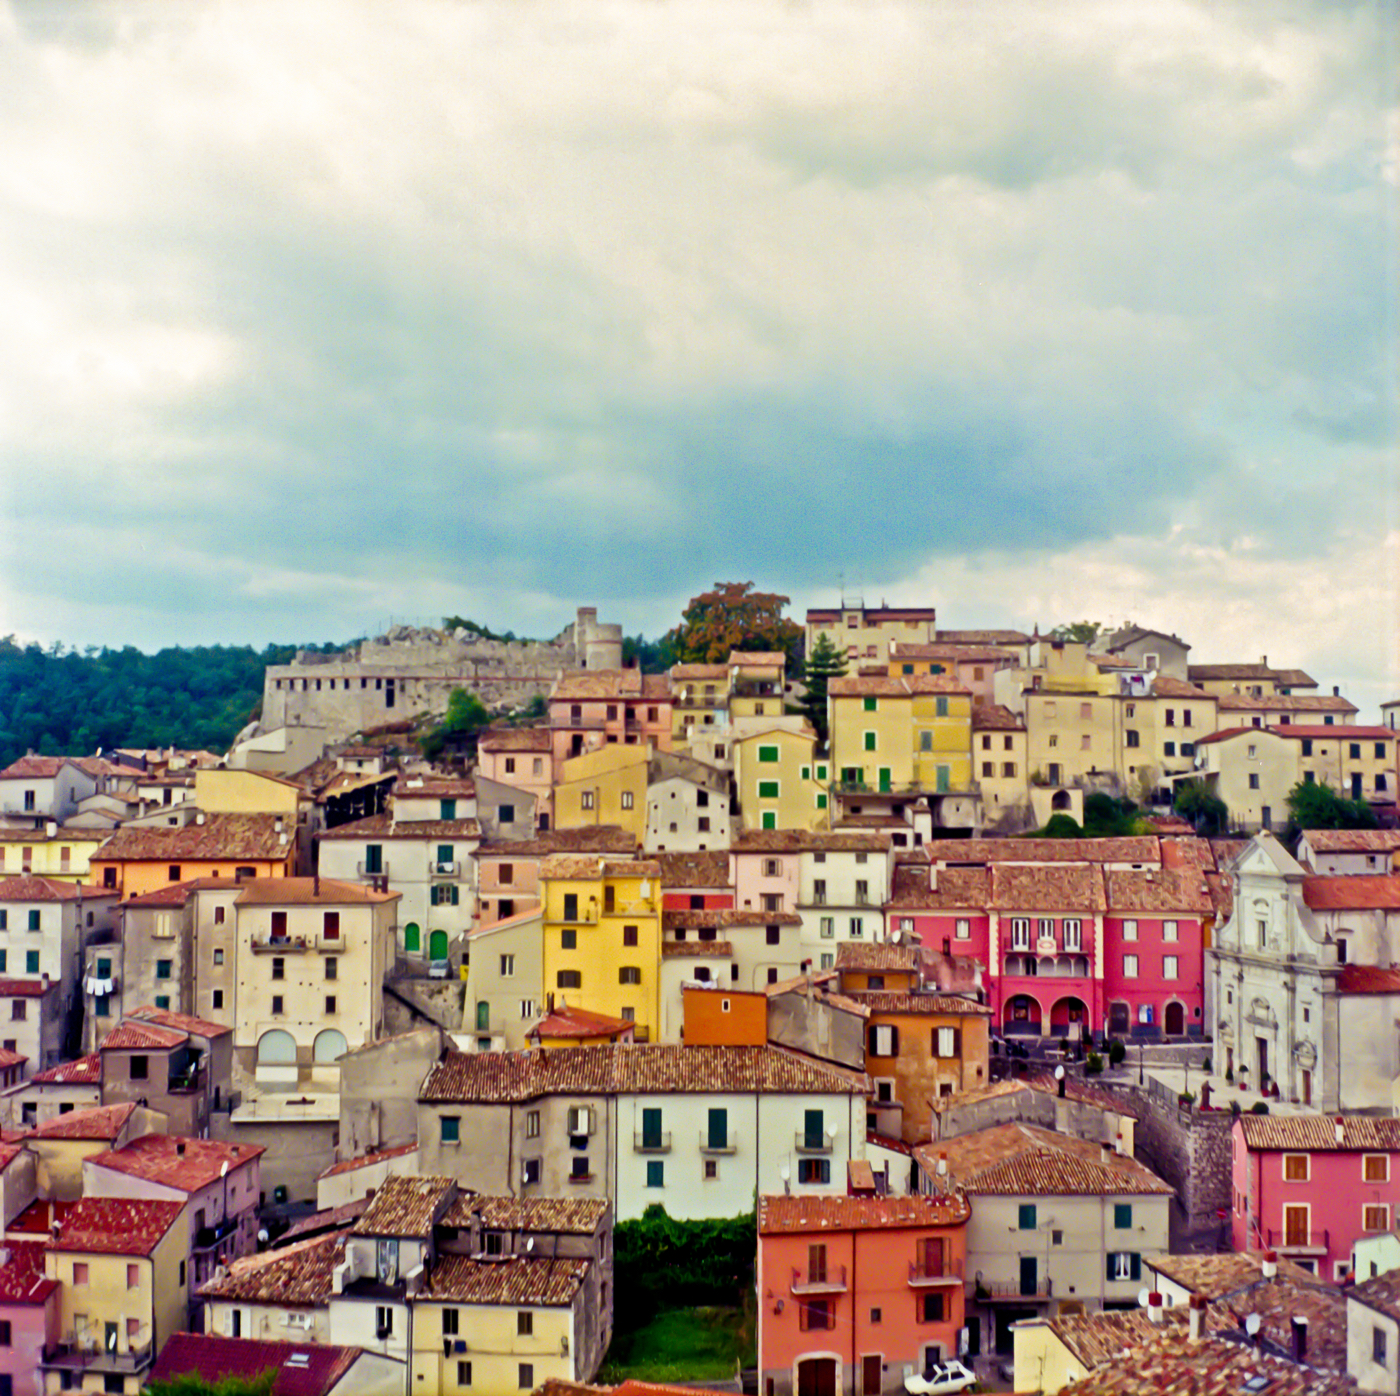 Emma_Sywyj_View_of _a Small Village_Italy.jpg